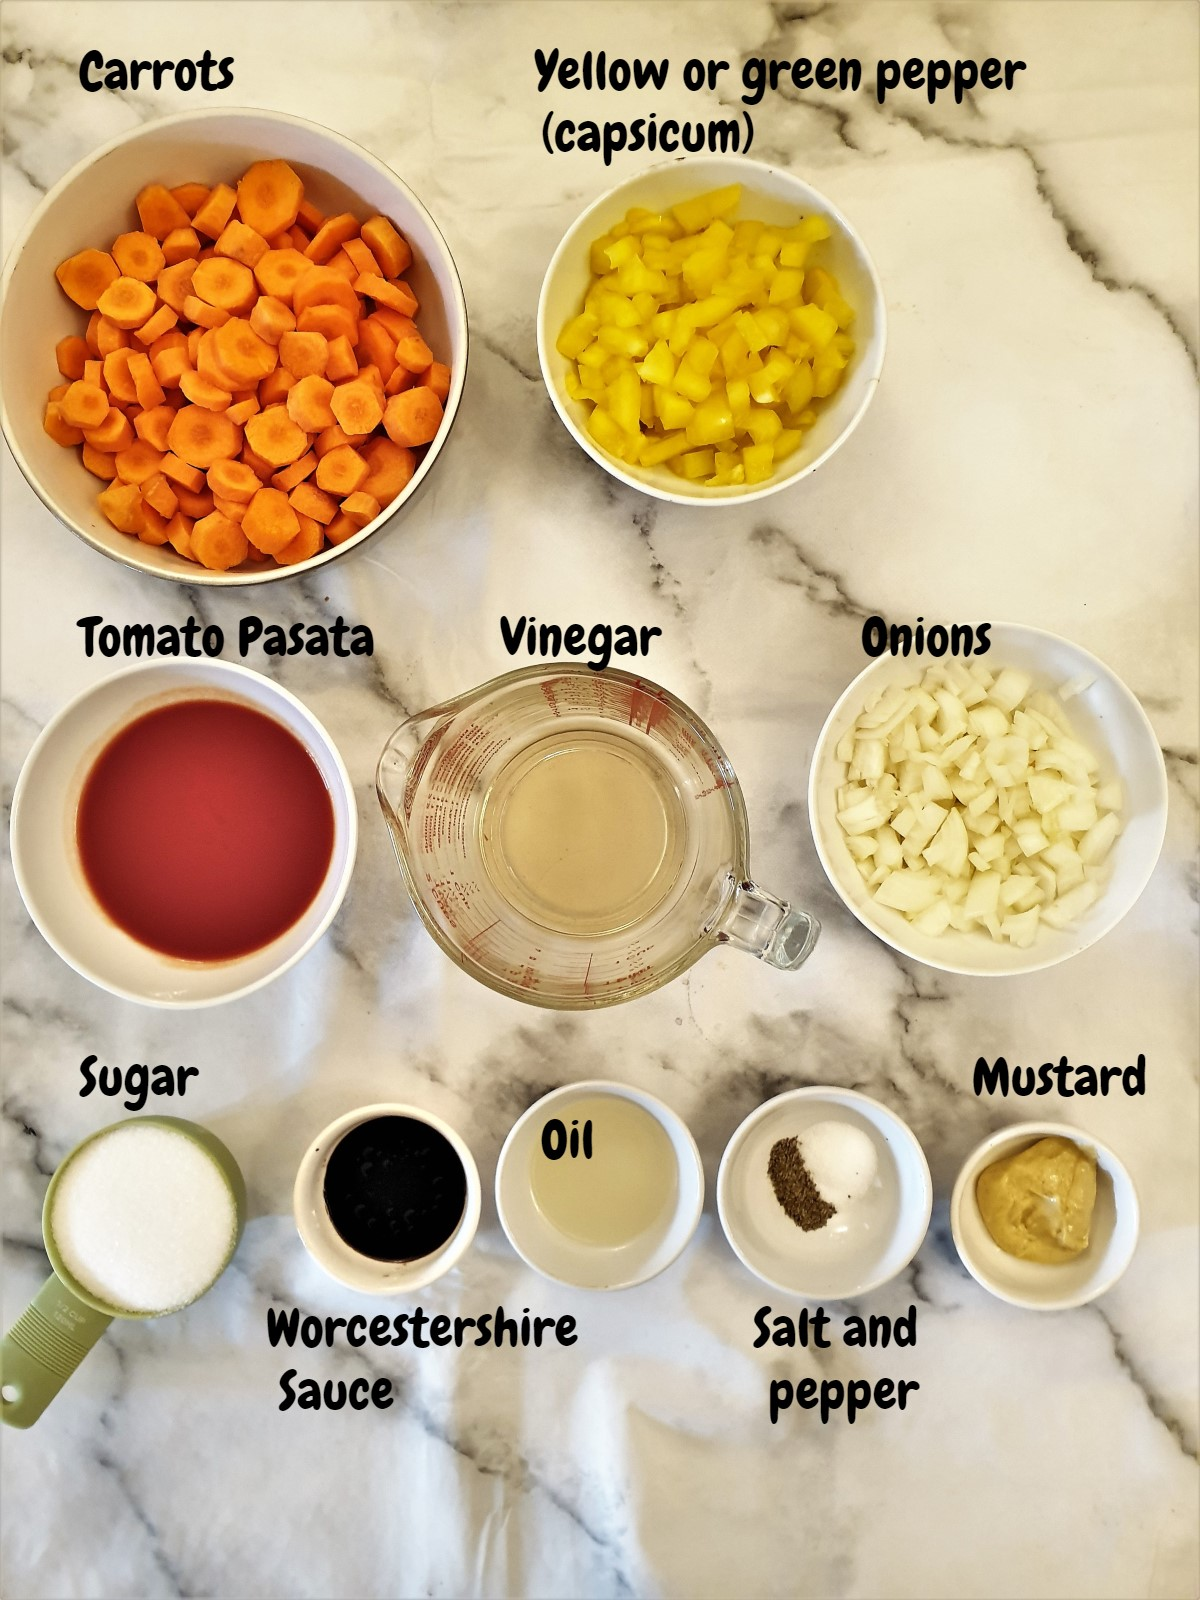 Ingredients for copper penny salad.